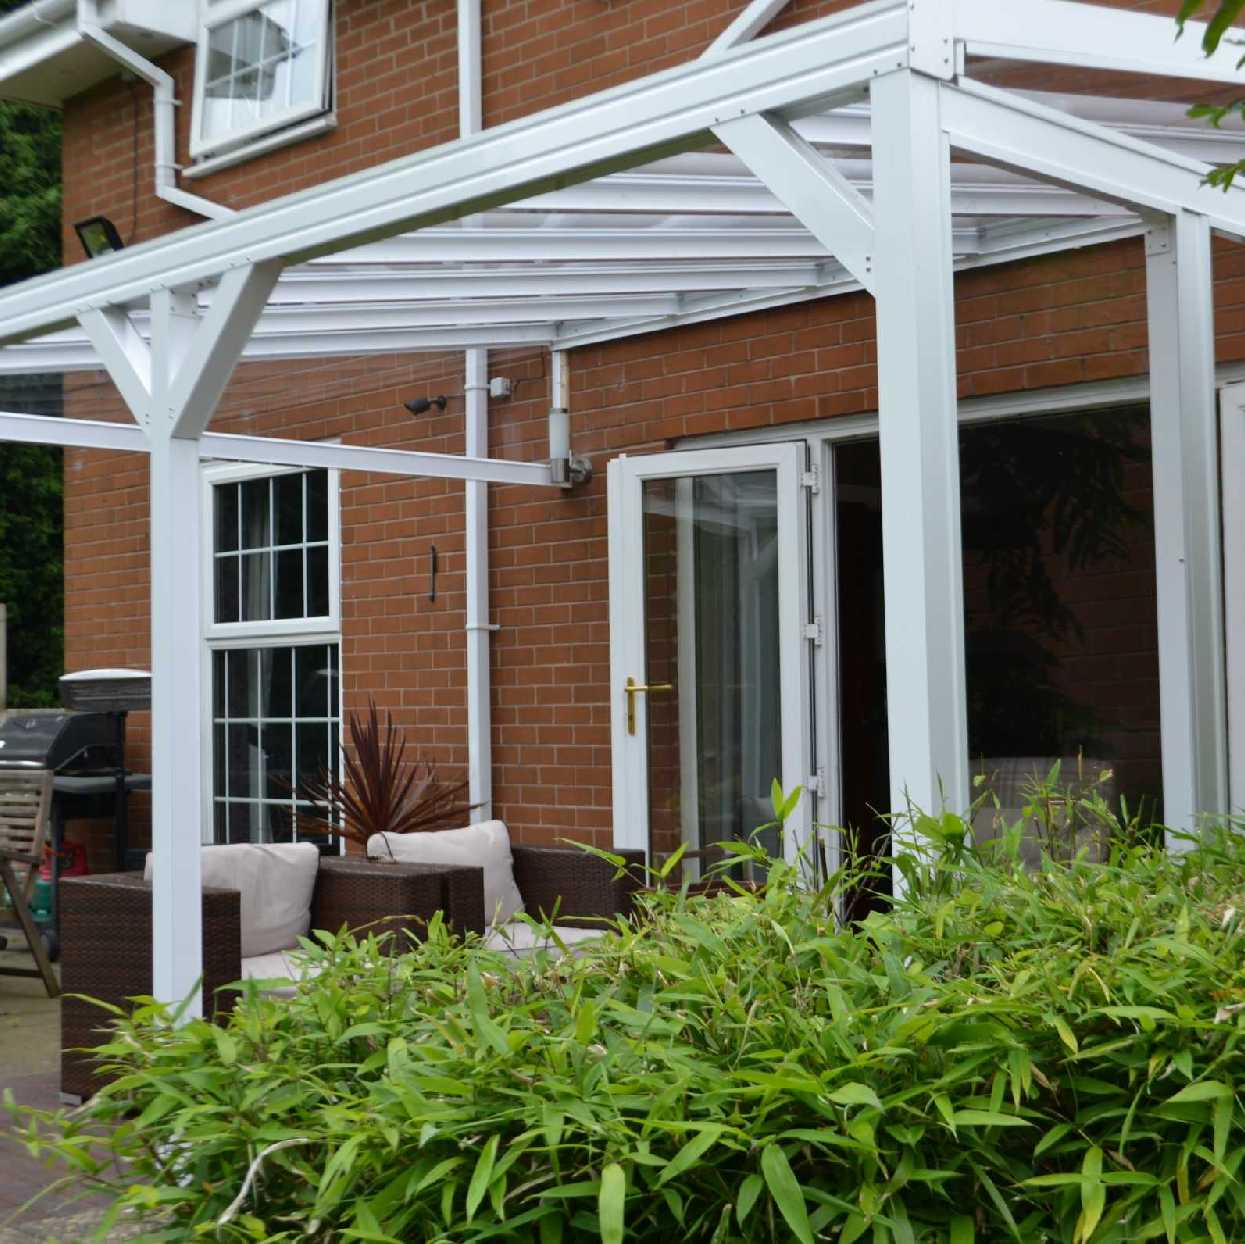 Omega Smart Lean-To Canopy with 6mm Glass Clear Plate Polycarbonate Glazing - 7.0m (W) x 3.5m (P), (4) Supporting Posts from Omega Build